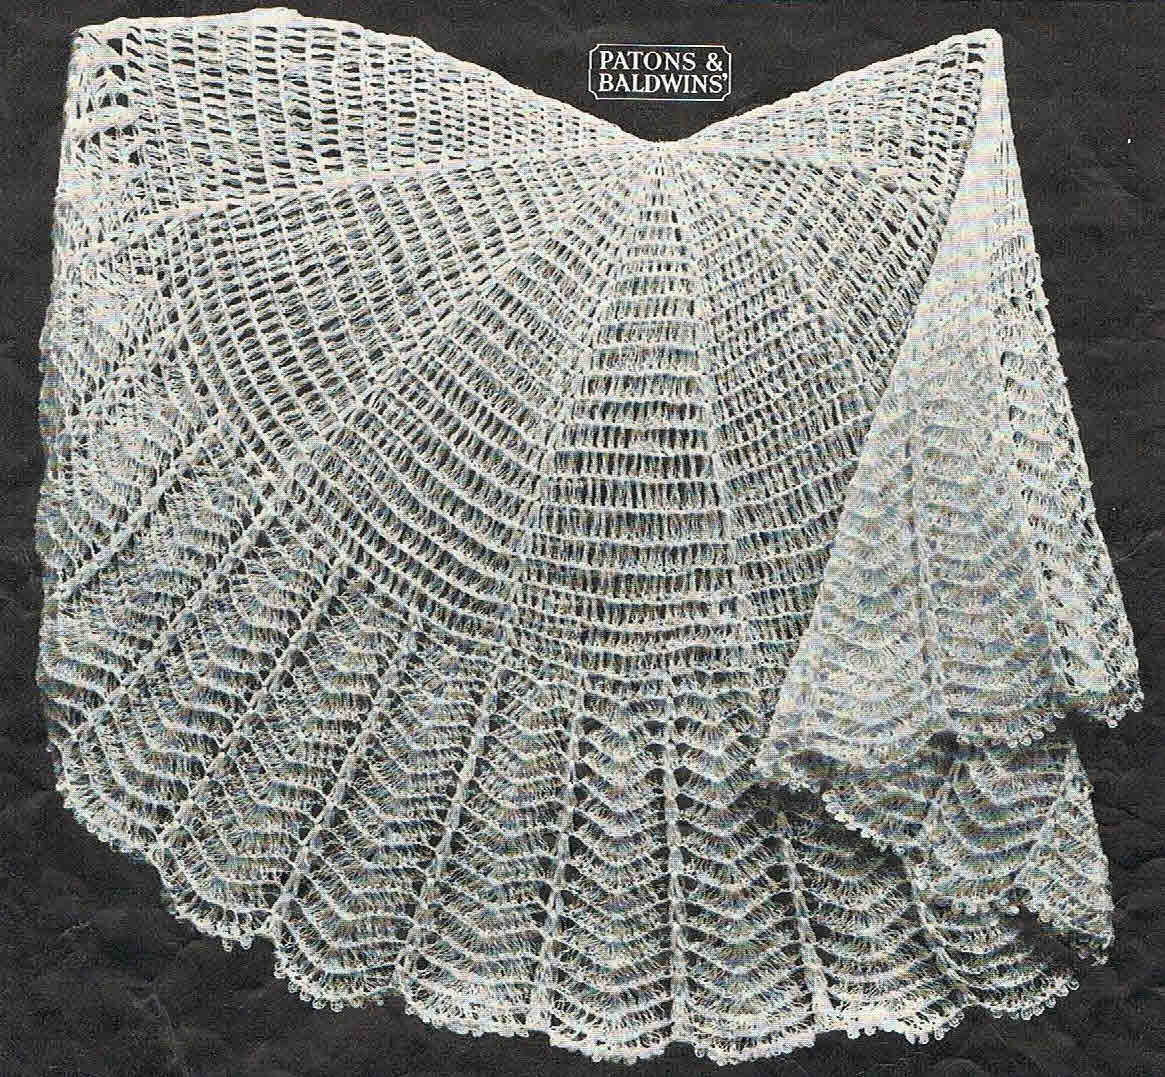 Free Knitting Pattern For A Baby Shawl : 40s style circular crochet baby shawl by VanessaLovesVintage